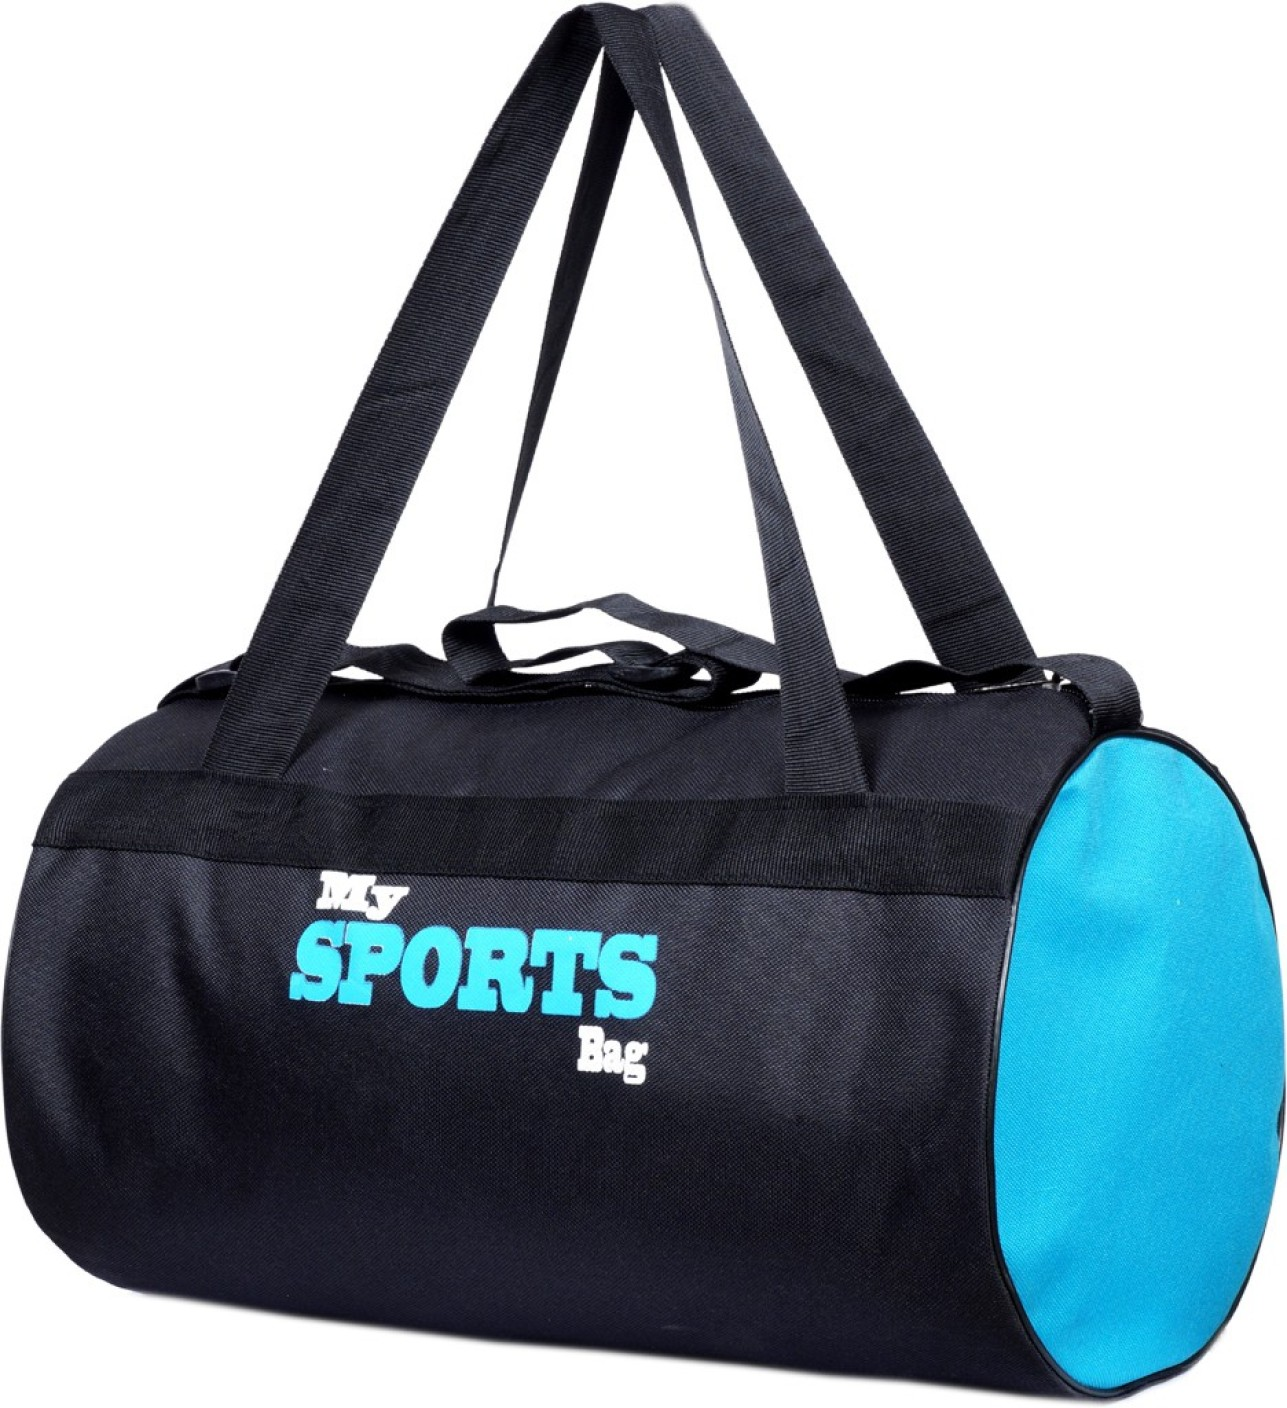 Gym Bag Flipkart: Buy Gag Wears Sports Gym Bag